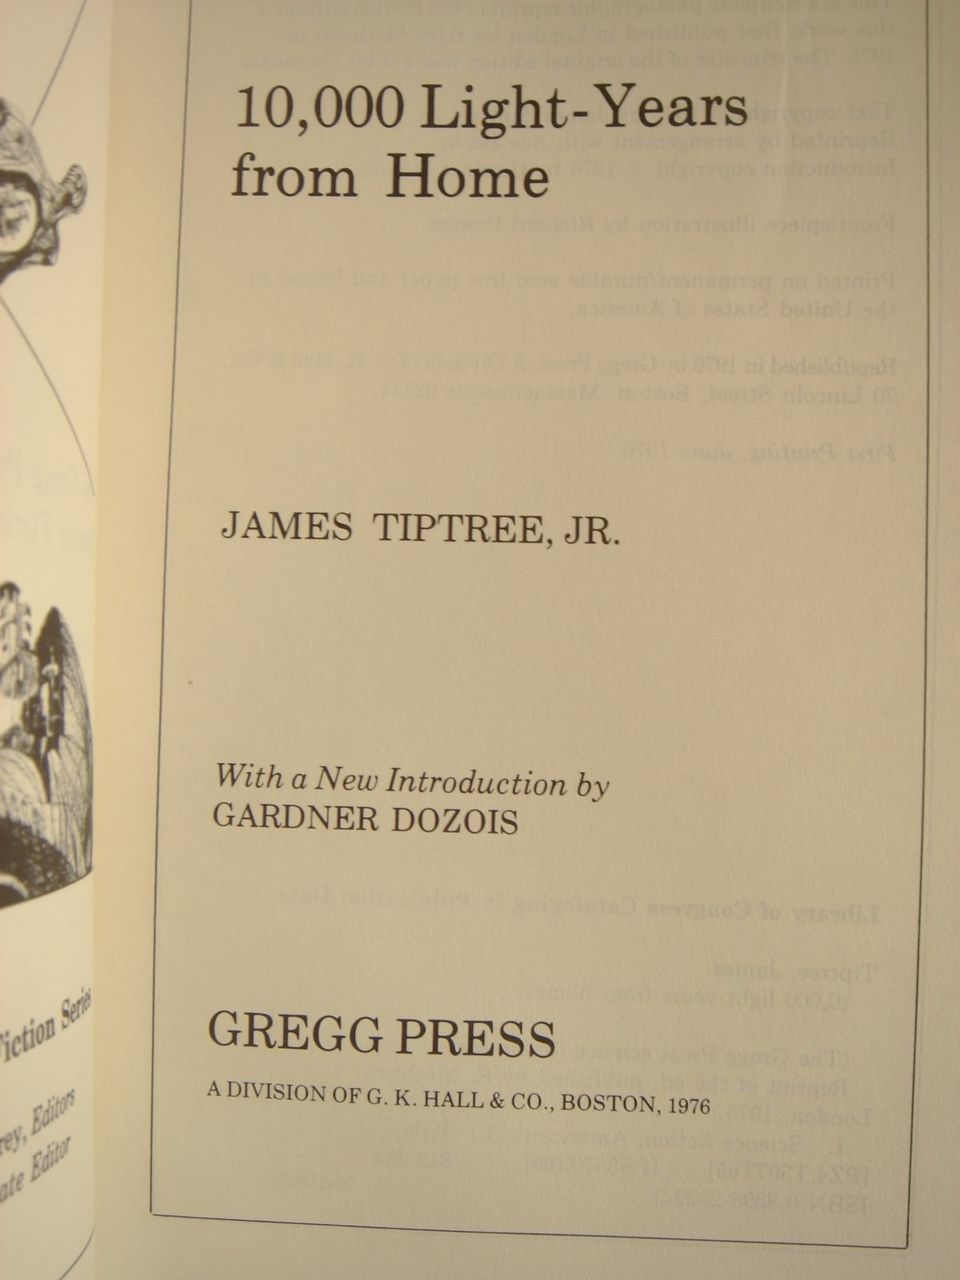 10,000 LIGHTYEARS FROM HOME, by James Tiptree, Jr. (Alice Sheldon) - 1976 [Gregg Press]